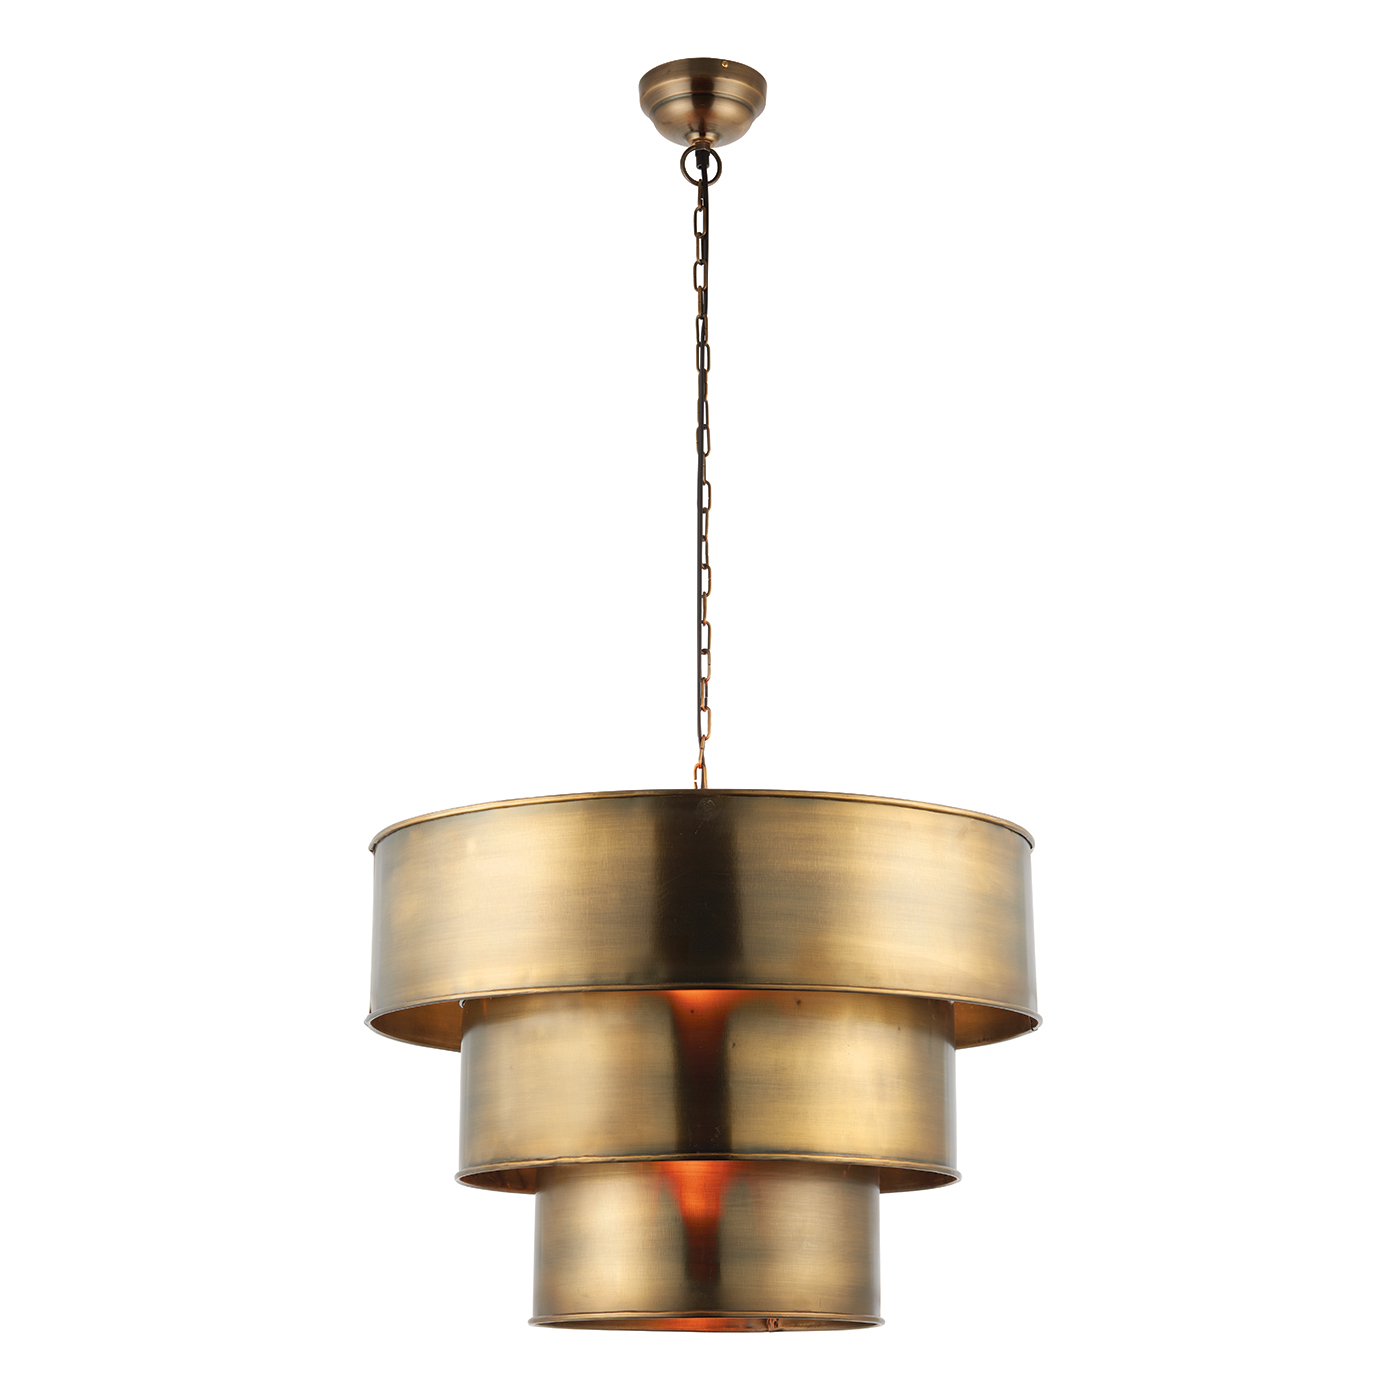 Endon Morad pendant 1x 40W Aged brass effect plate